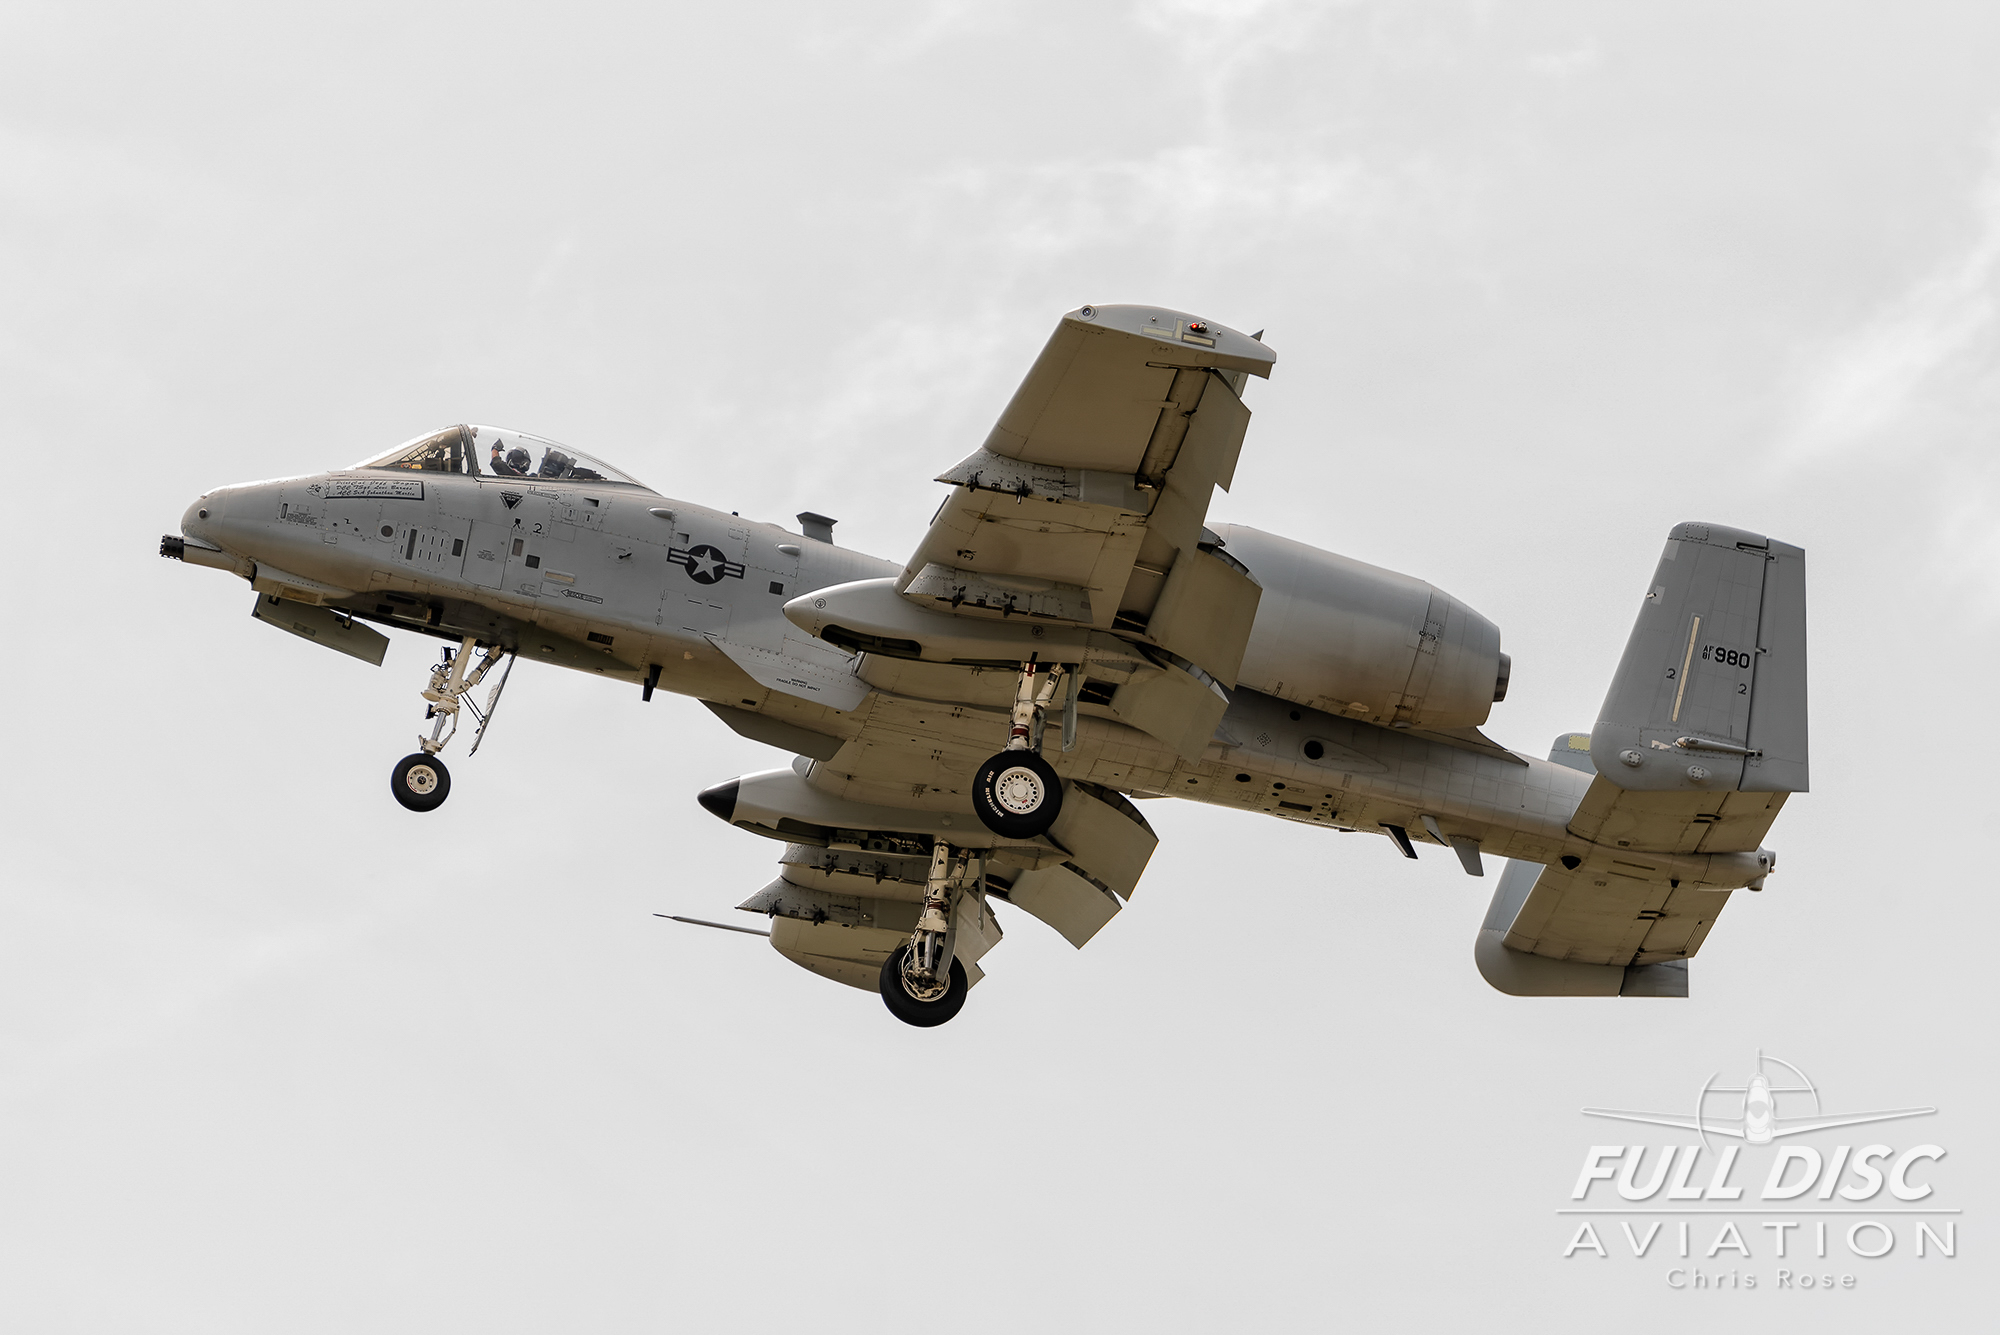 Manassas_FullDiscAviation_ChrisRose-May 19, 2019-02.jpg